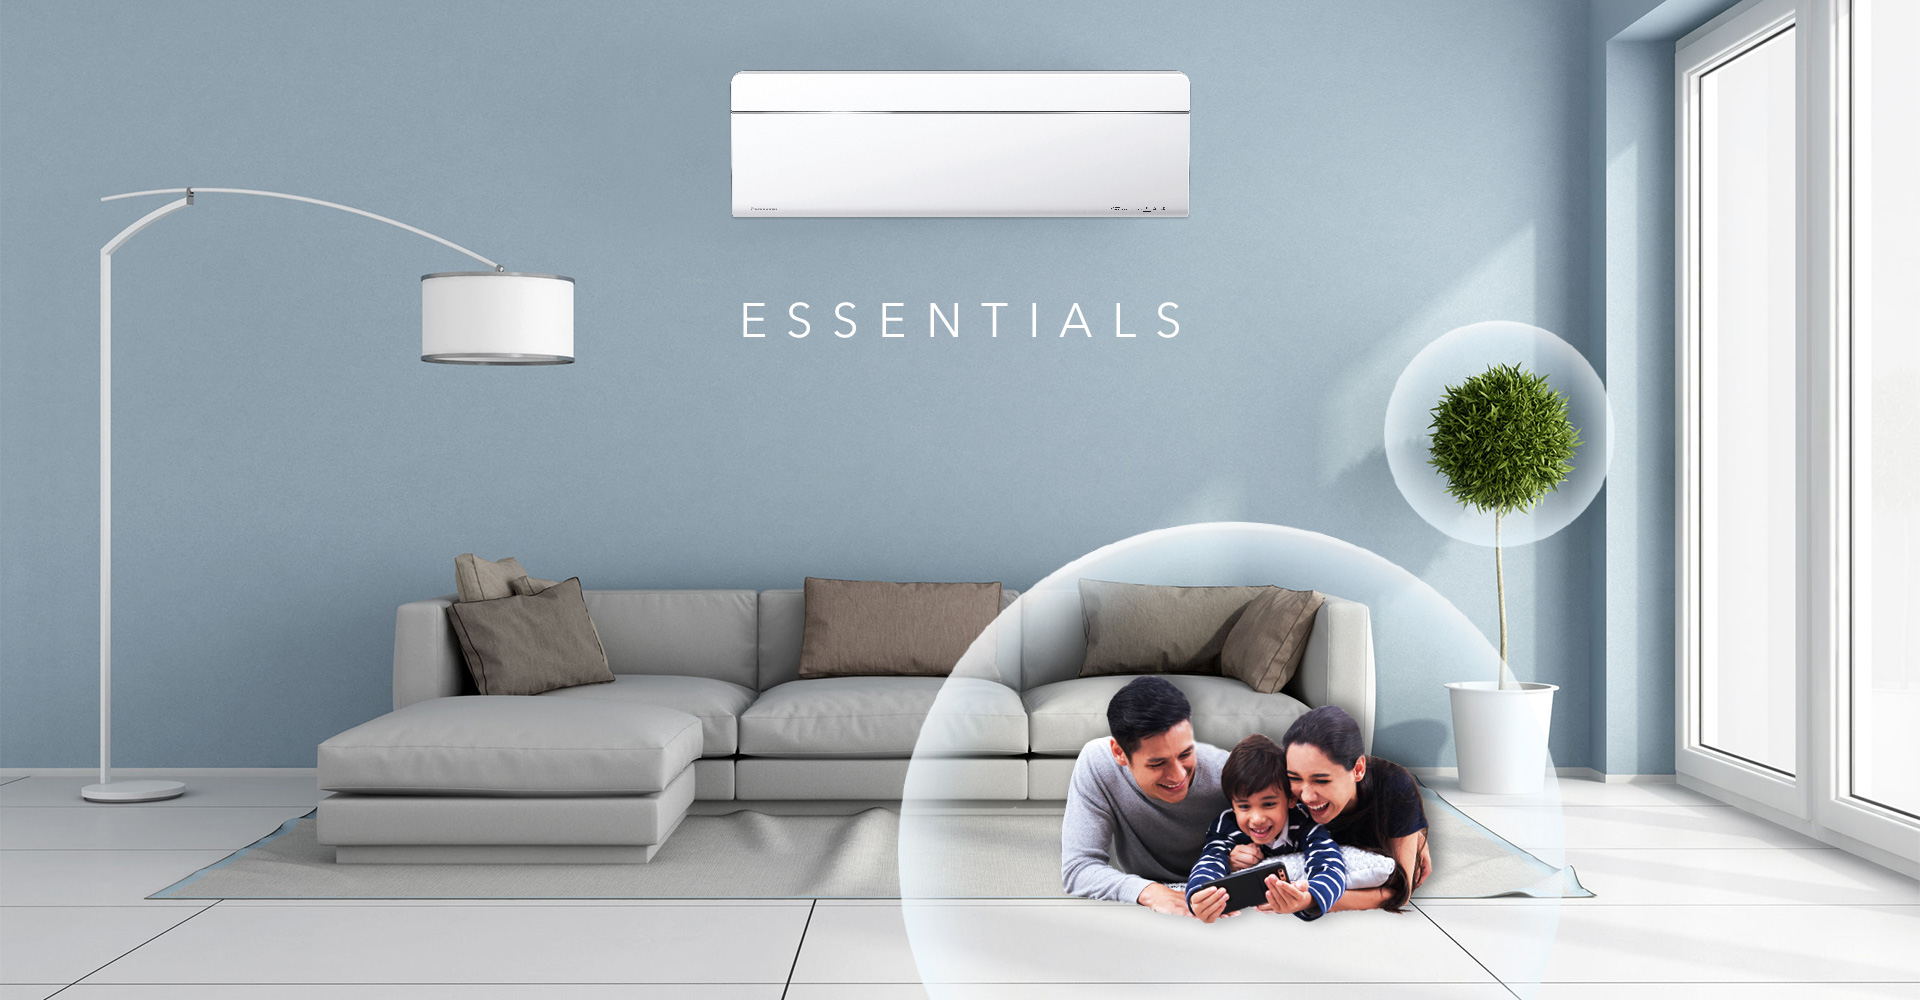 5 New Air Conditioning Technologies to Keep You Cool